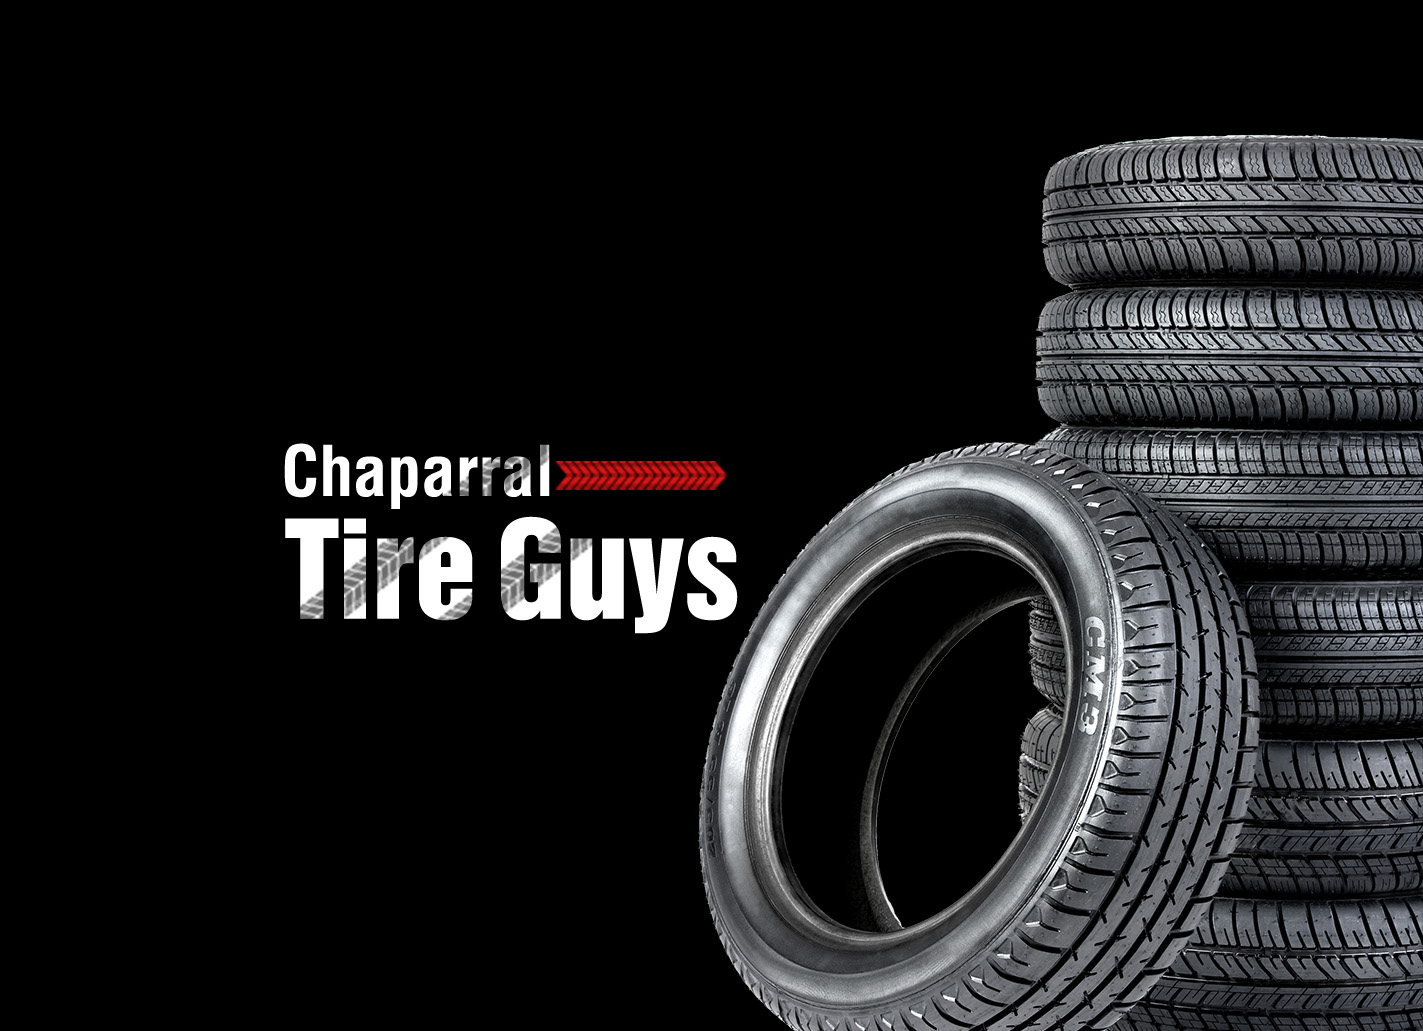 Chaparral Tire Guys Tires Brakes Oil Changes